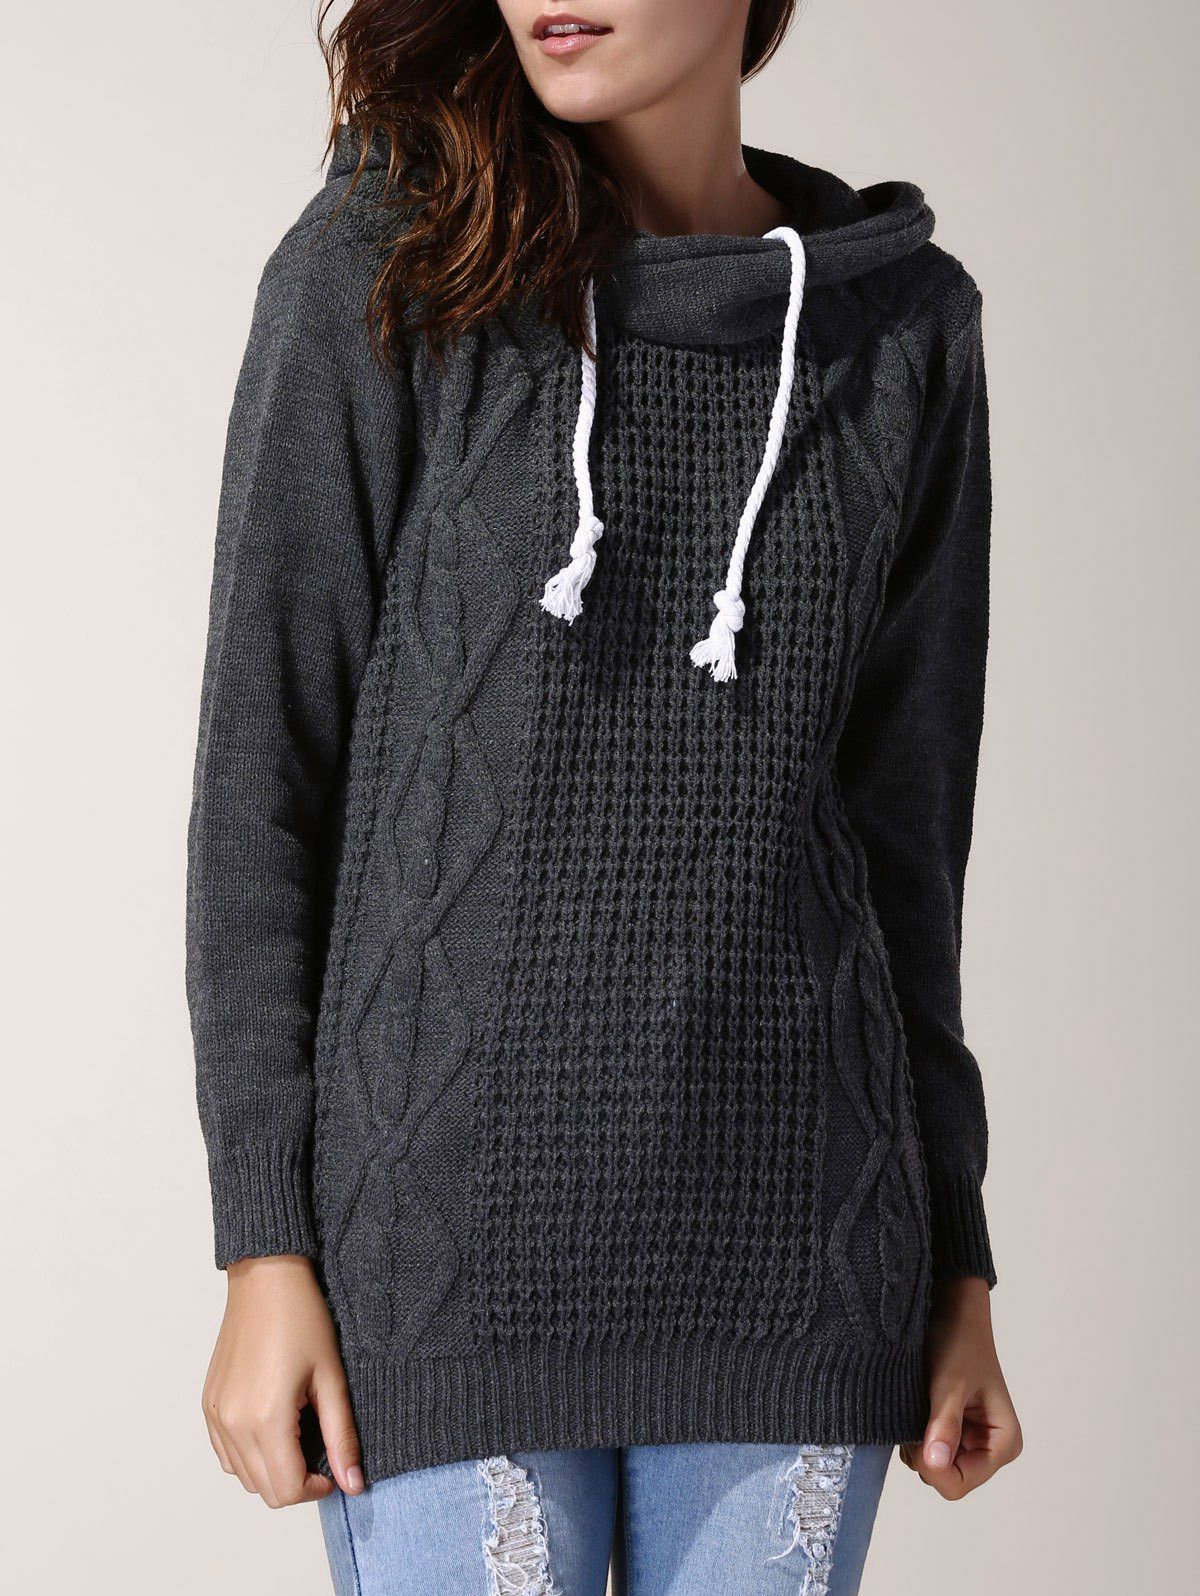 Madelyn Hooded Long Sleeve Sweater | Products | Pinterest | Products